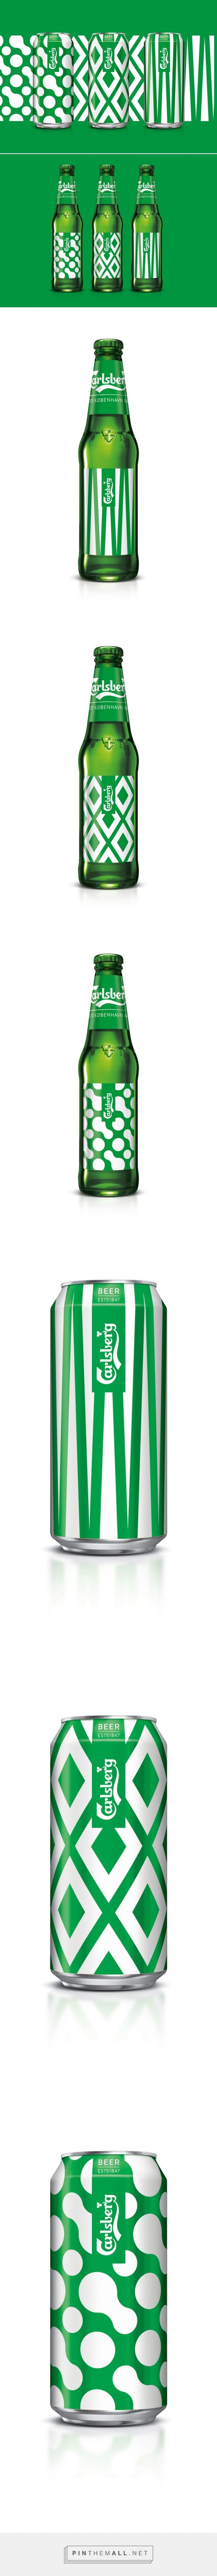 Carlsberg Limited Edition København Collection packaging design by Taxi Studio - http://www.packagingoftheworld.com/2017/01/carlsberg-limited-edition-kobenhavn.html #beer #packaging #can #bottle